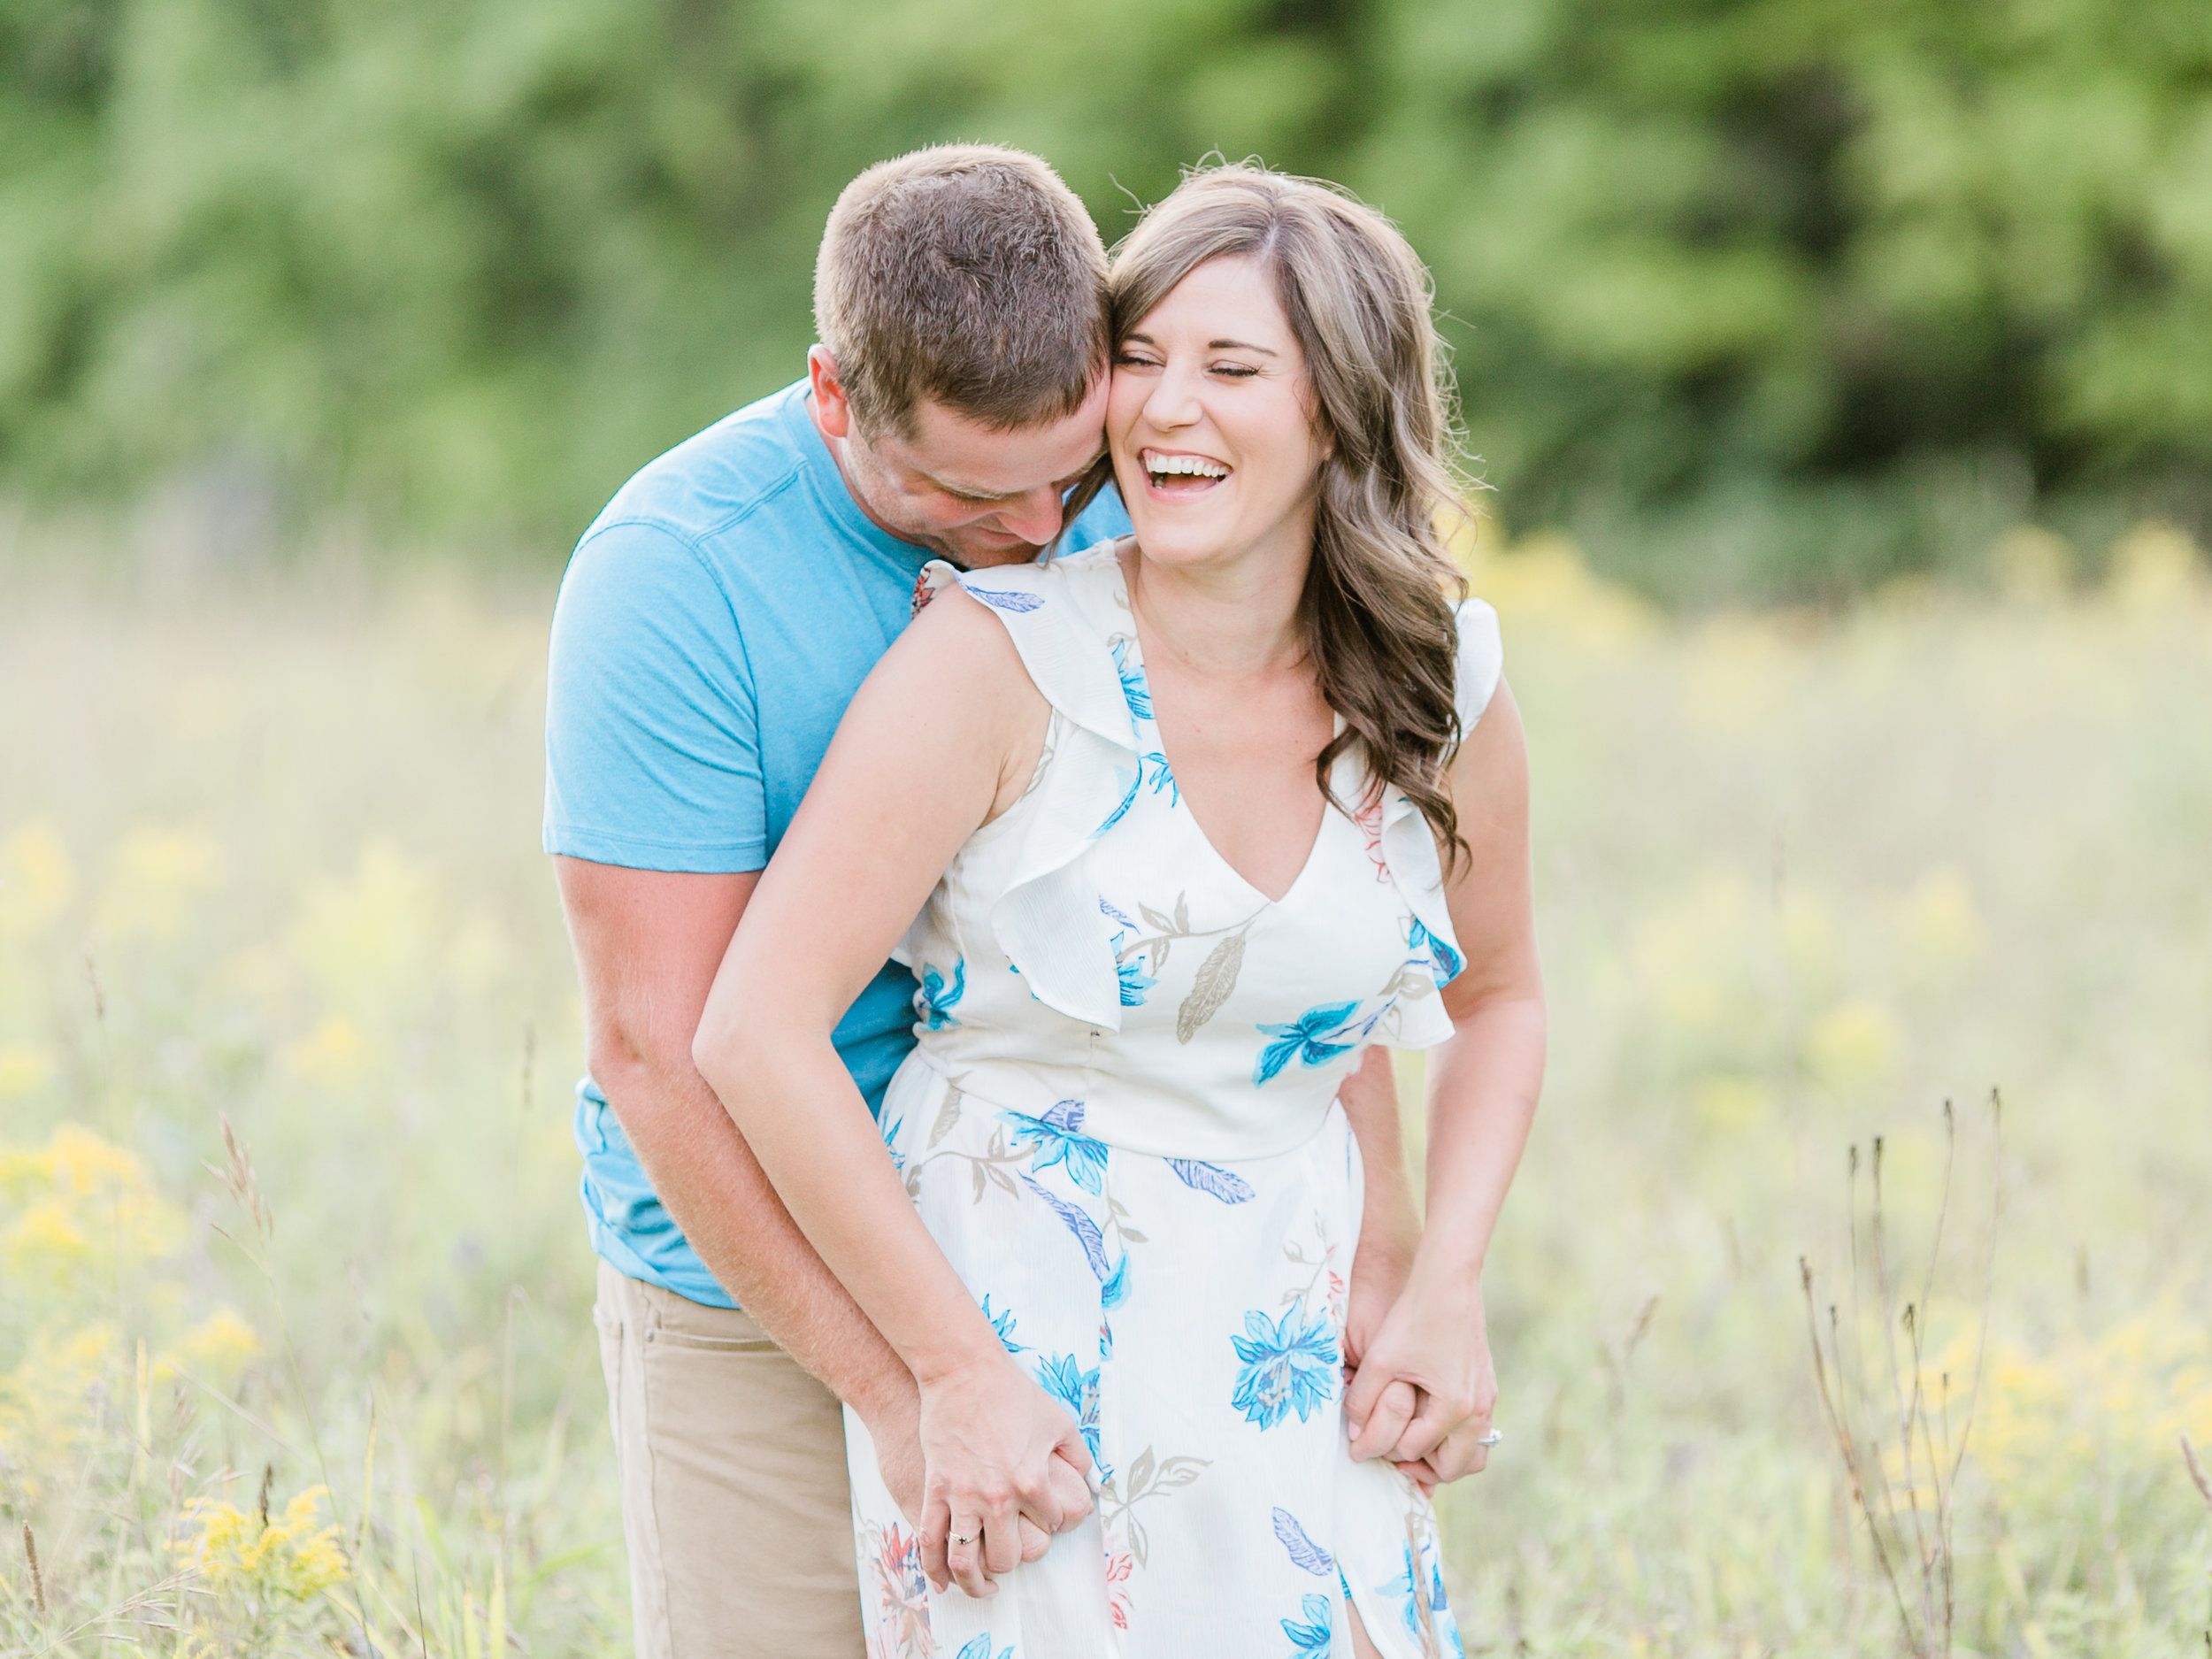 4. Engagement Session Gallery - After your engagement session, we will be sharing sneak peeks on Instagram. You will have your full gallery back to you within 2 weeks to share with your family and friends.